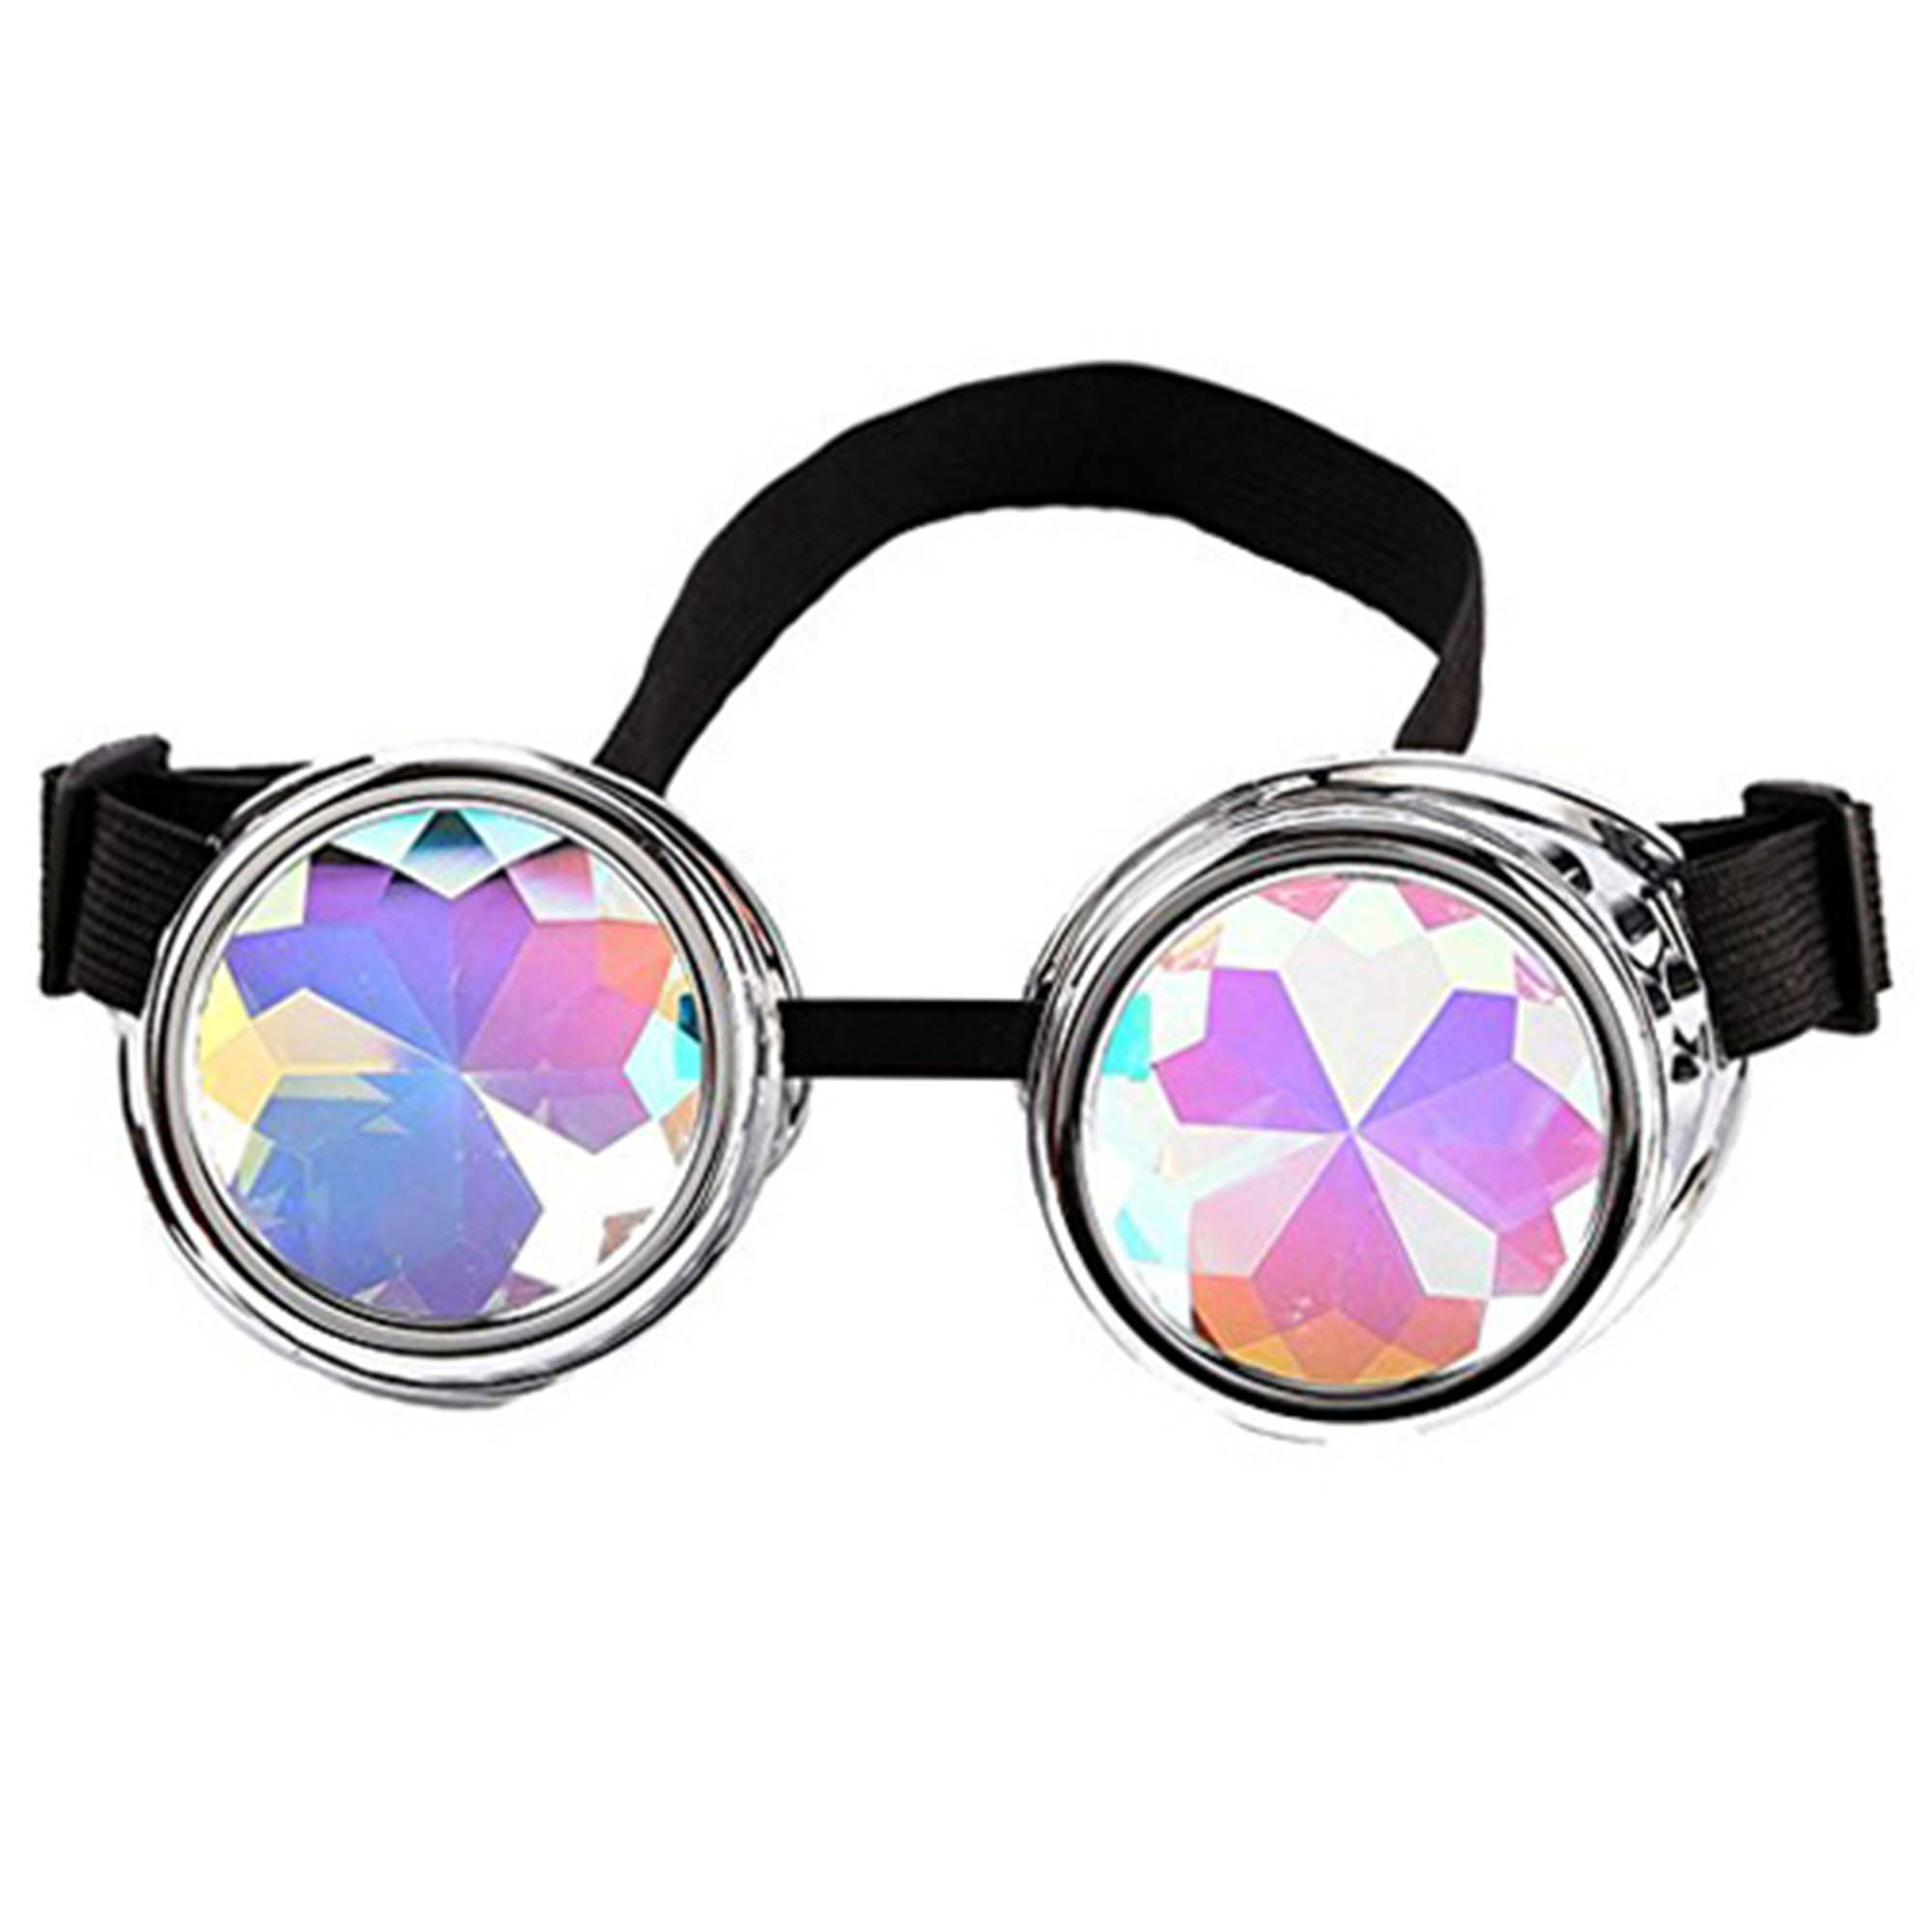 C.F.GOGGLE Kaleidoscope Steampunk Glasses Goggles with Rainbow Crystal Glass Lens Halloween Cosplay